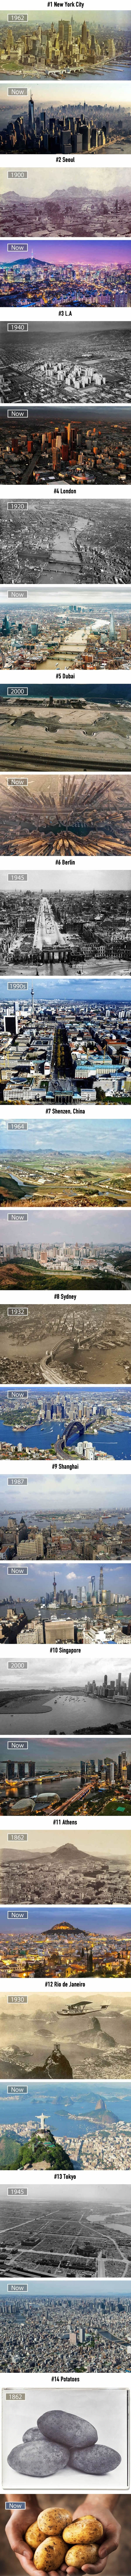 Cities, then vs now